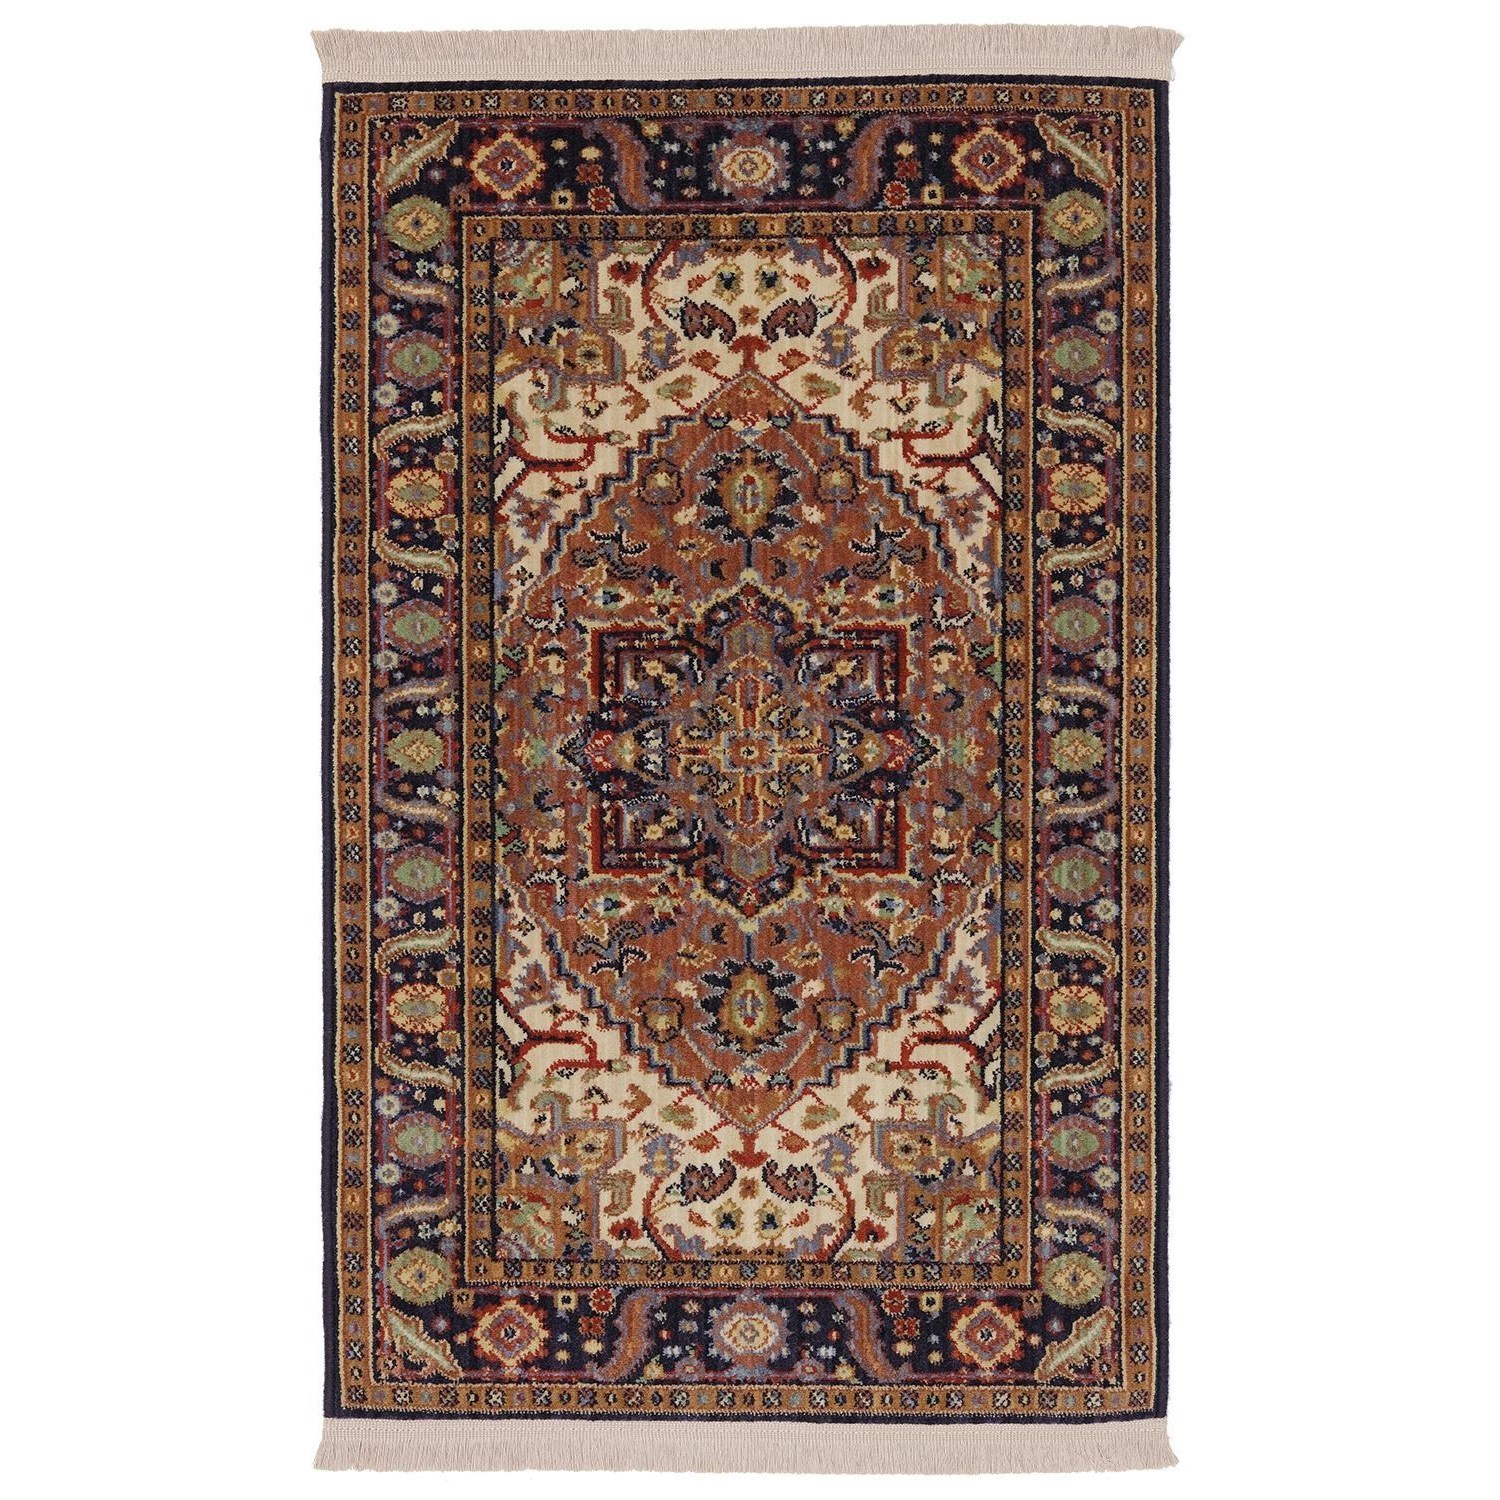 Karastan Rugs English Manor 2'6x4' Windsor Rug - Item Number: 02120 00501 030048